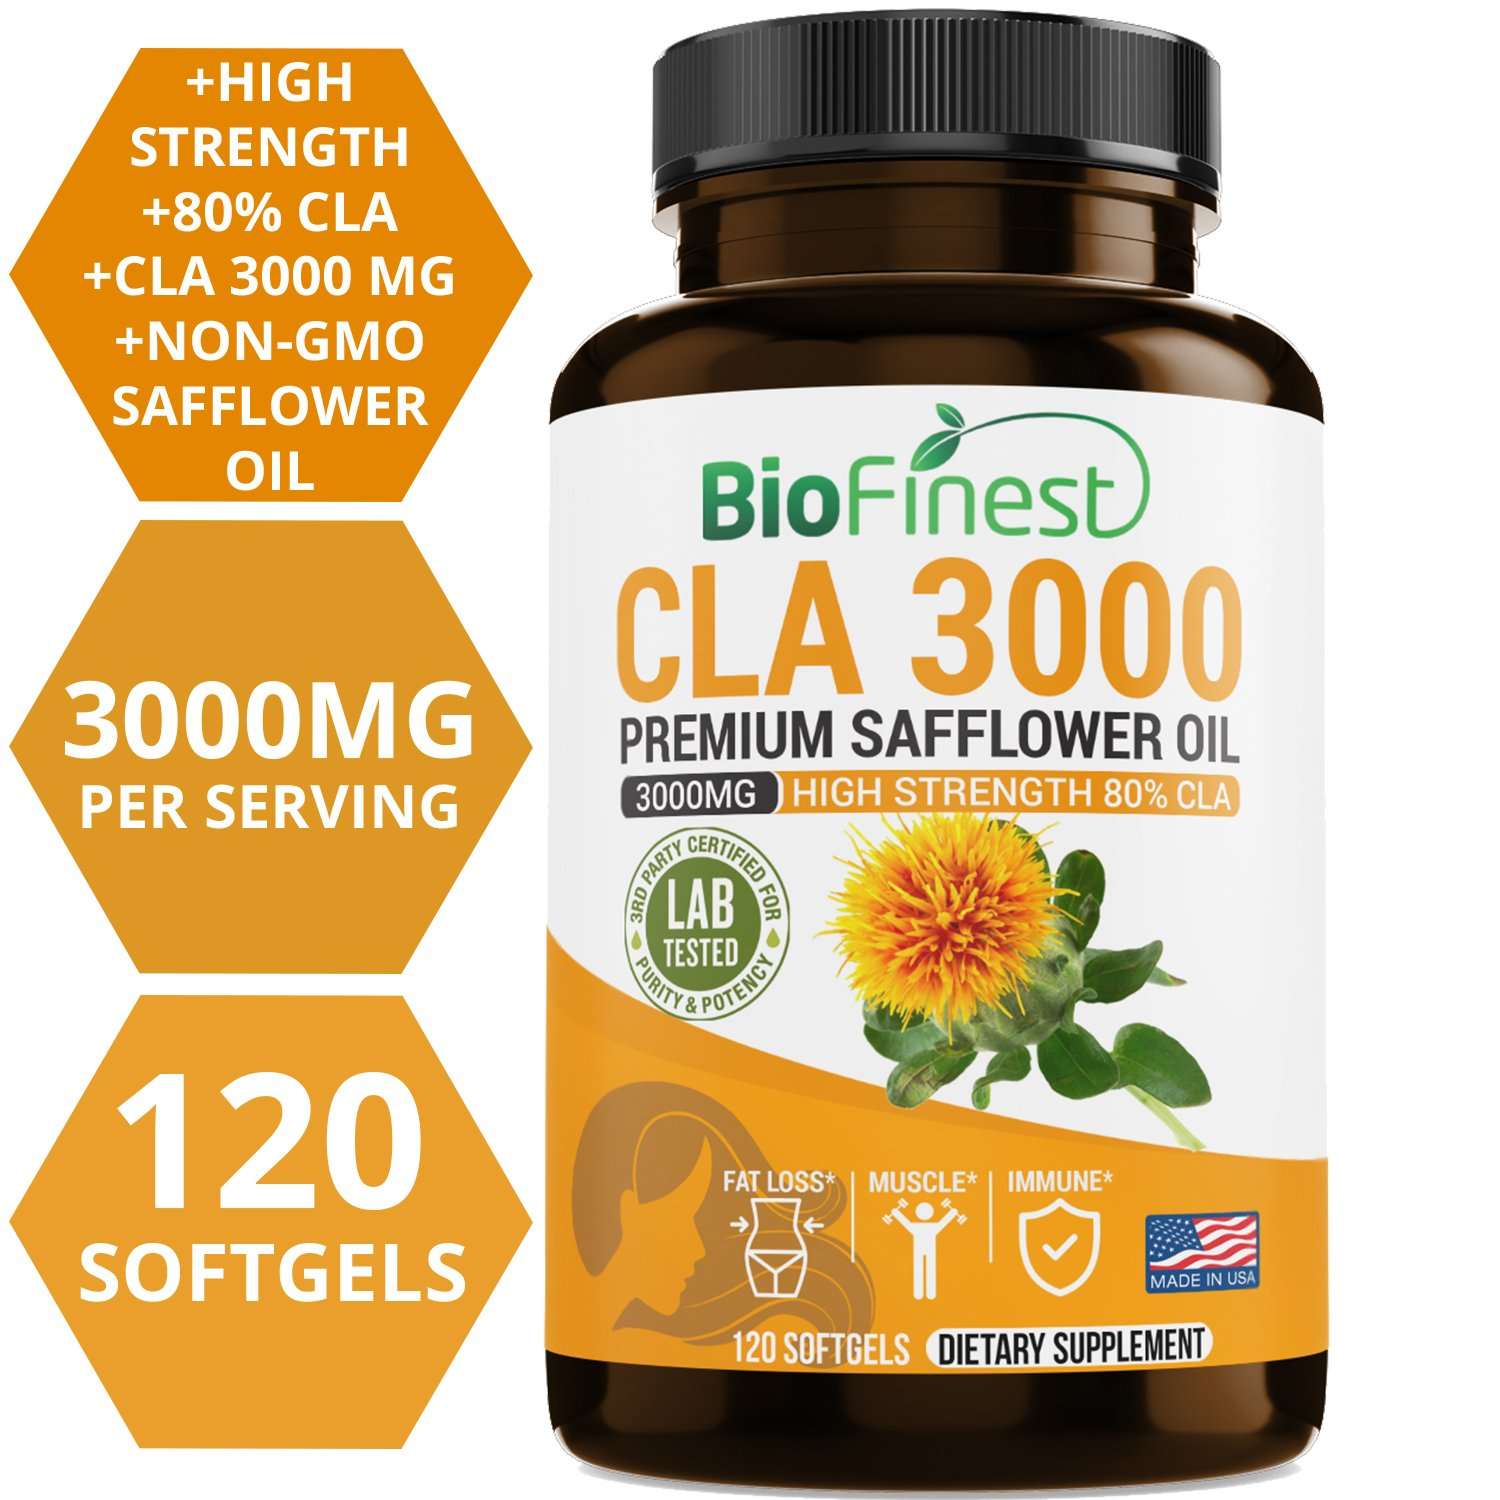 Biofinest CLA Safflower Oil 1500 / 3000mg Supplement - Conjugated Linoleic Acid - Non-GMO, Non-Stimulating, Gluten Free - Best for Men & Women (120 Softgels Capsules)